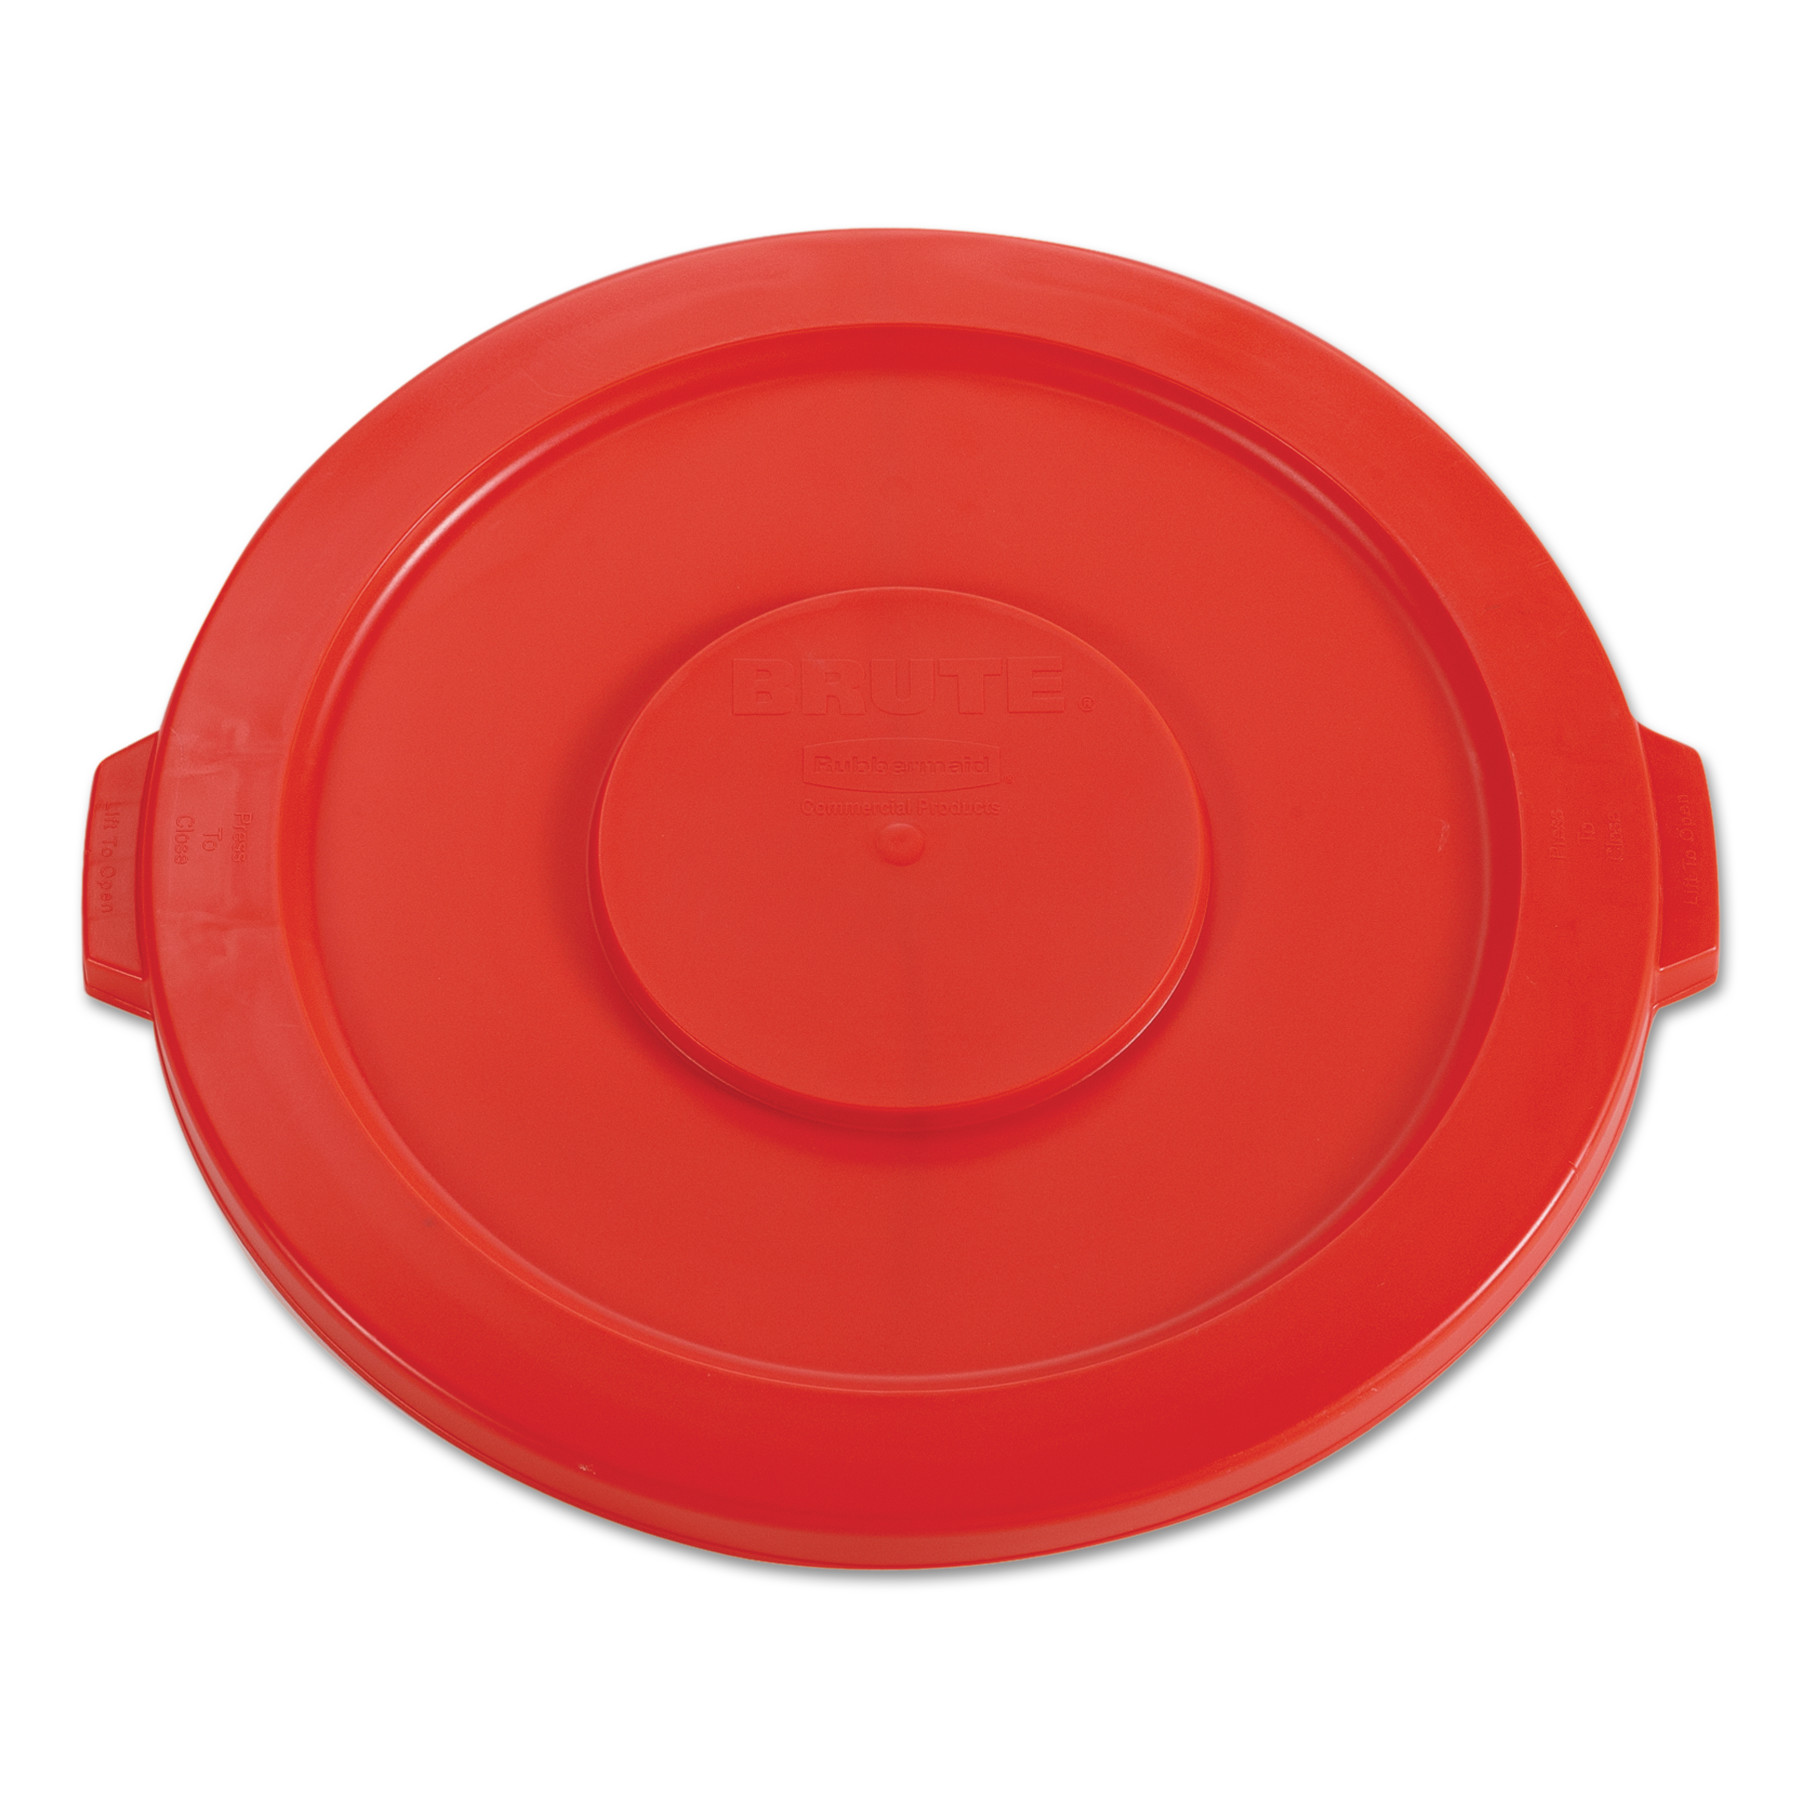 """Rubbermaid Commercial Round Flat Top Lid, for 32-Gallon Round Brute Containers, 22 1/4"""", dia., Red"""